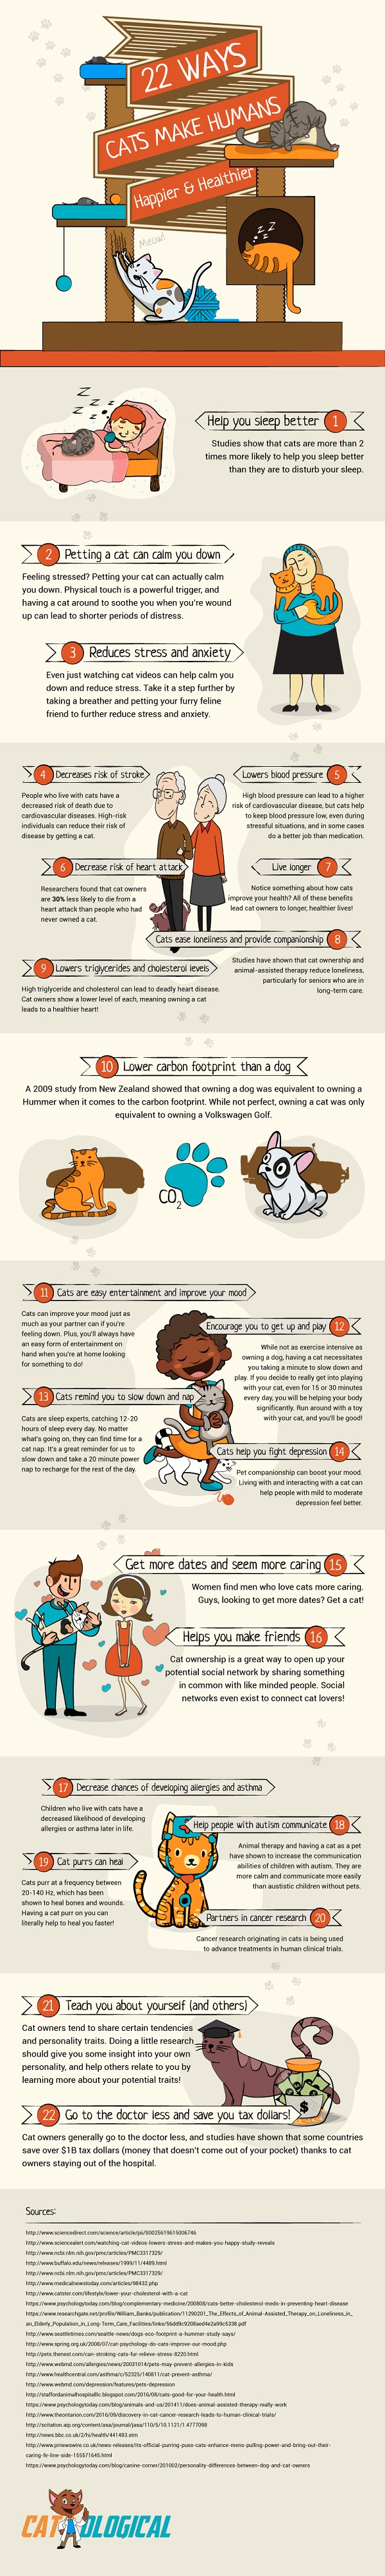 ways cats make life better for humans, cat infographic